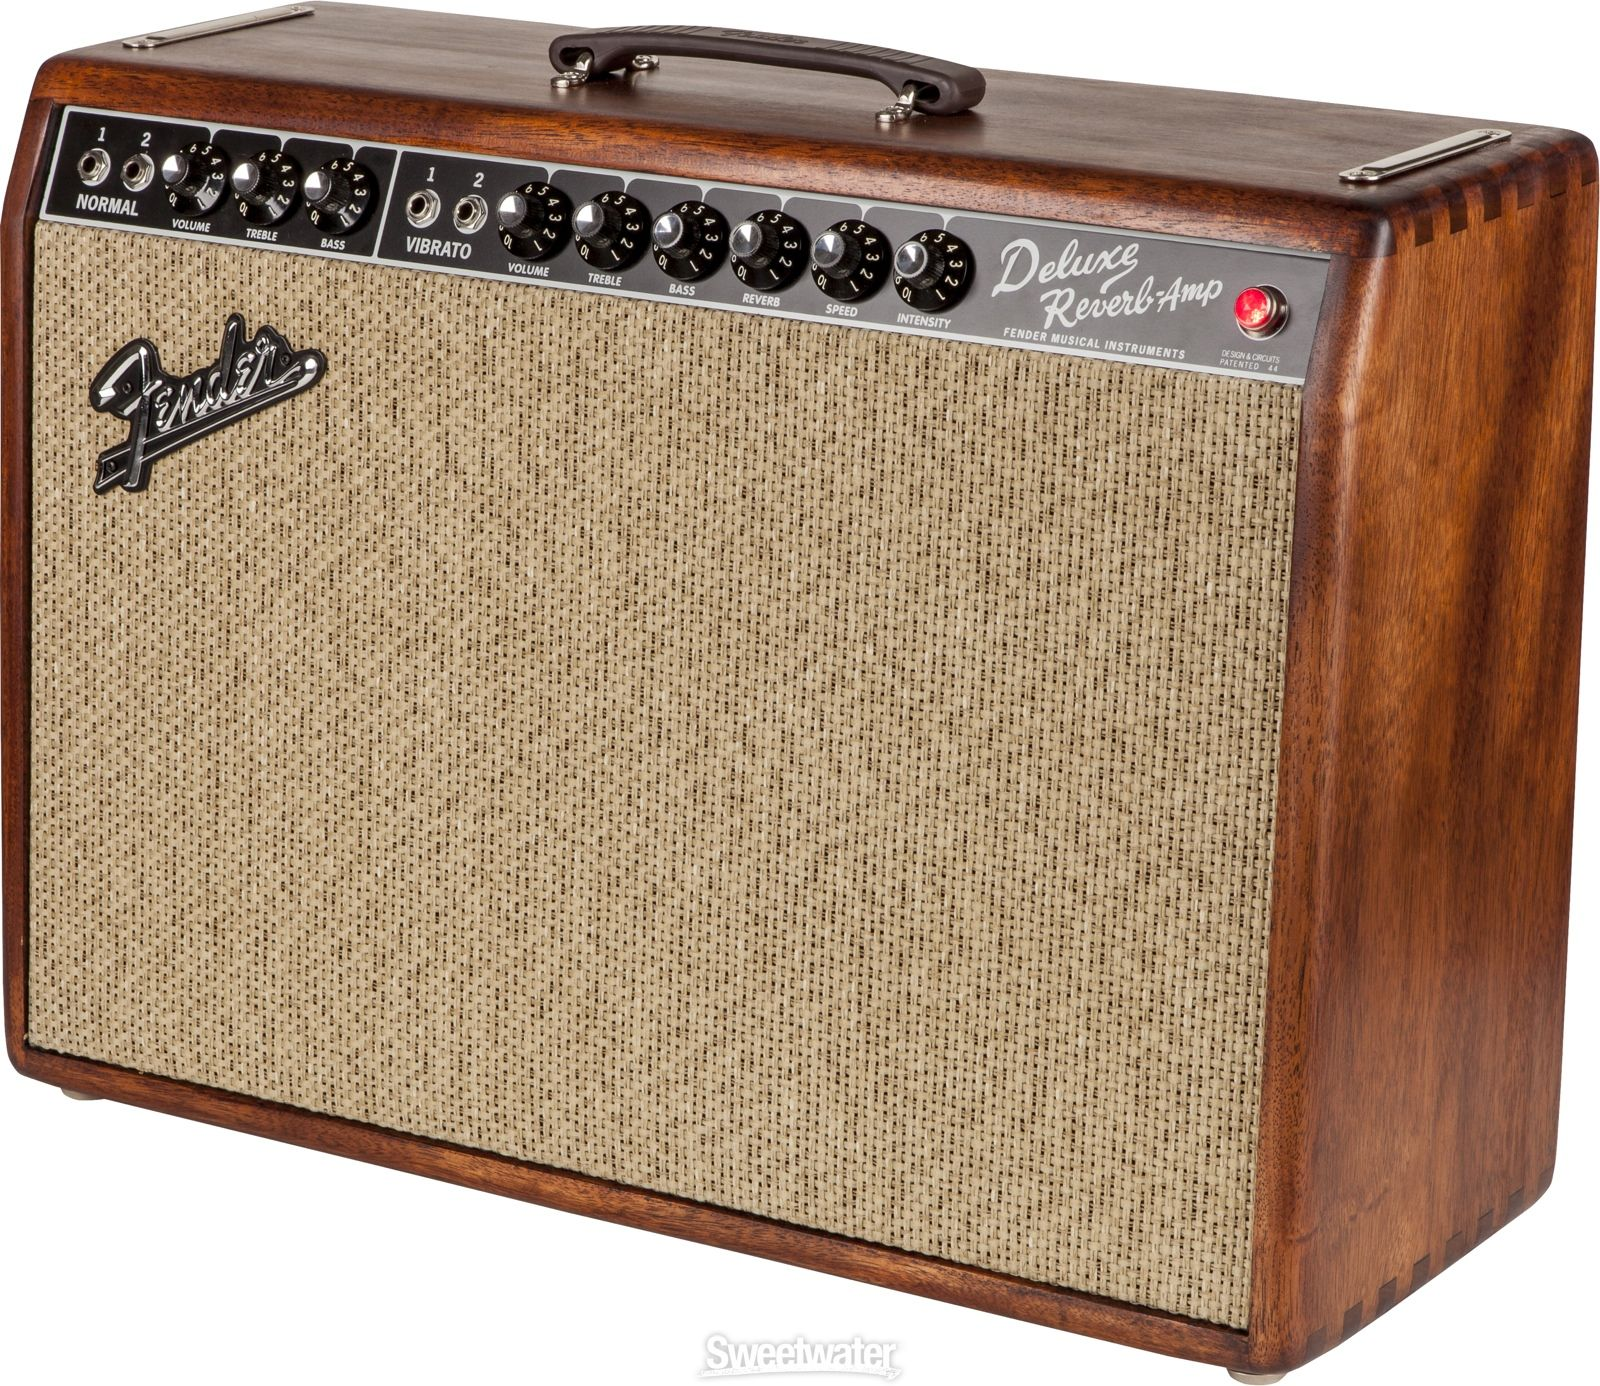 fender 39 65 deluxe reverb fsr mahogany cane stuff i want fender guitar amps fender guitars. Black Bedroom Furniture Sets. Home Design Ideas